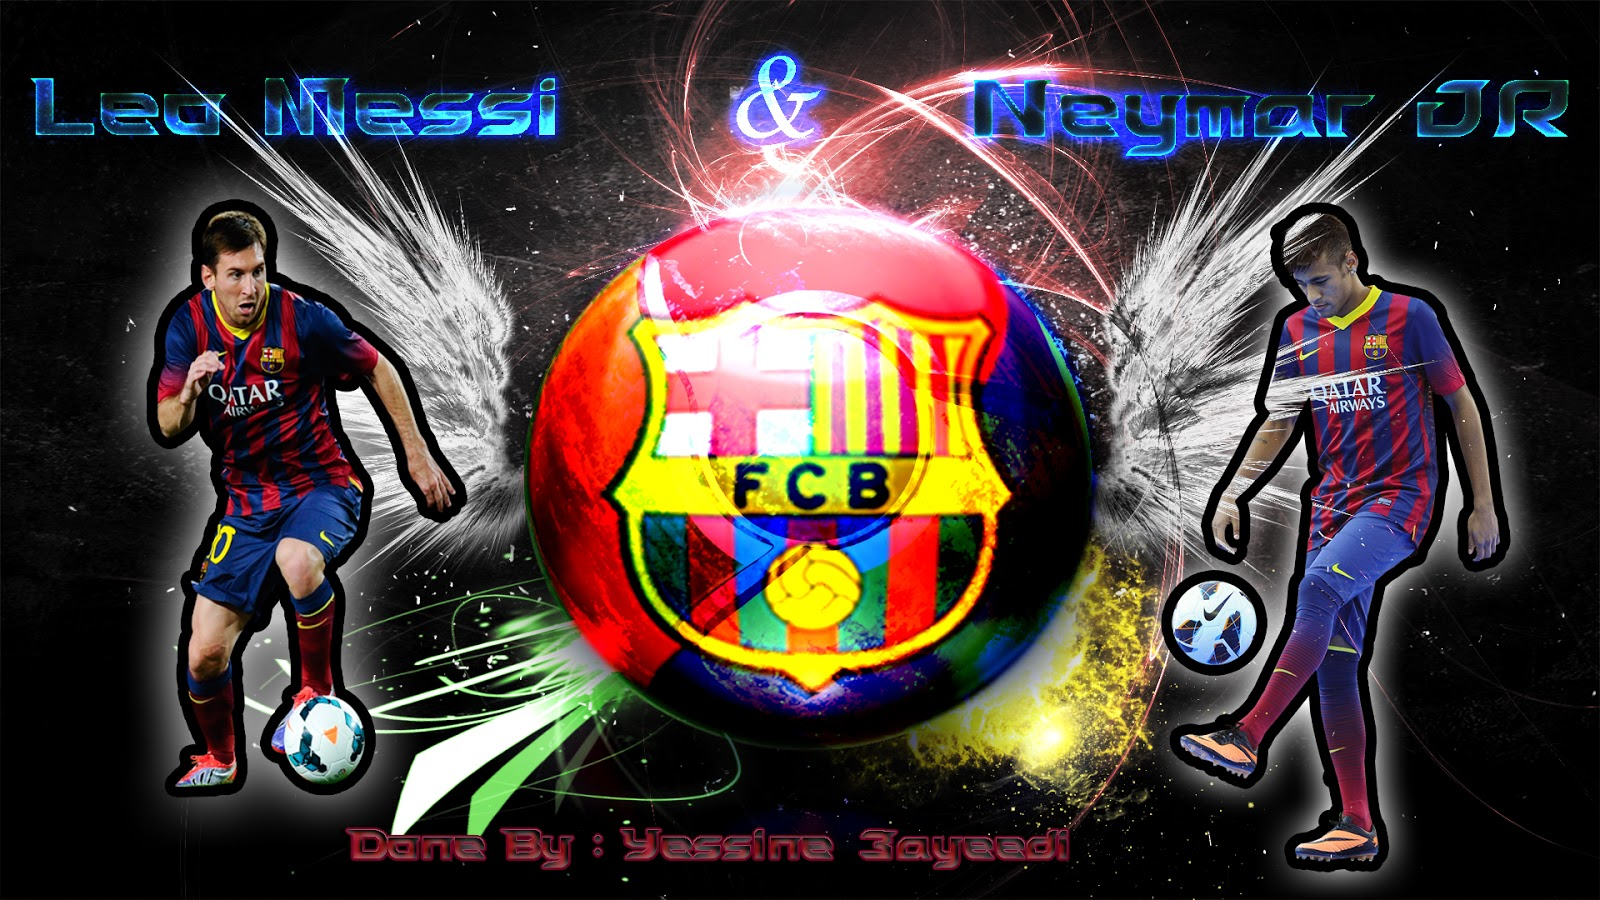 Messi And Neymar Wallpaper Neymar jr and messi wallpaper 1600x900